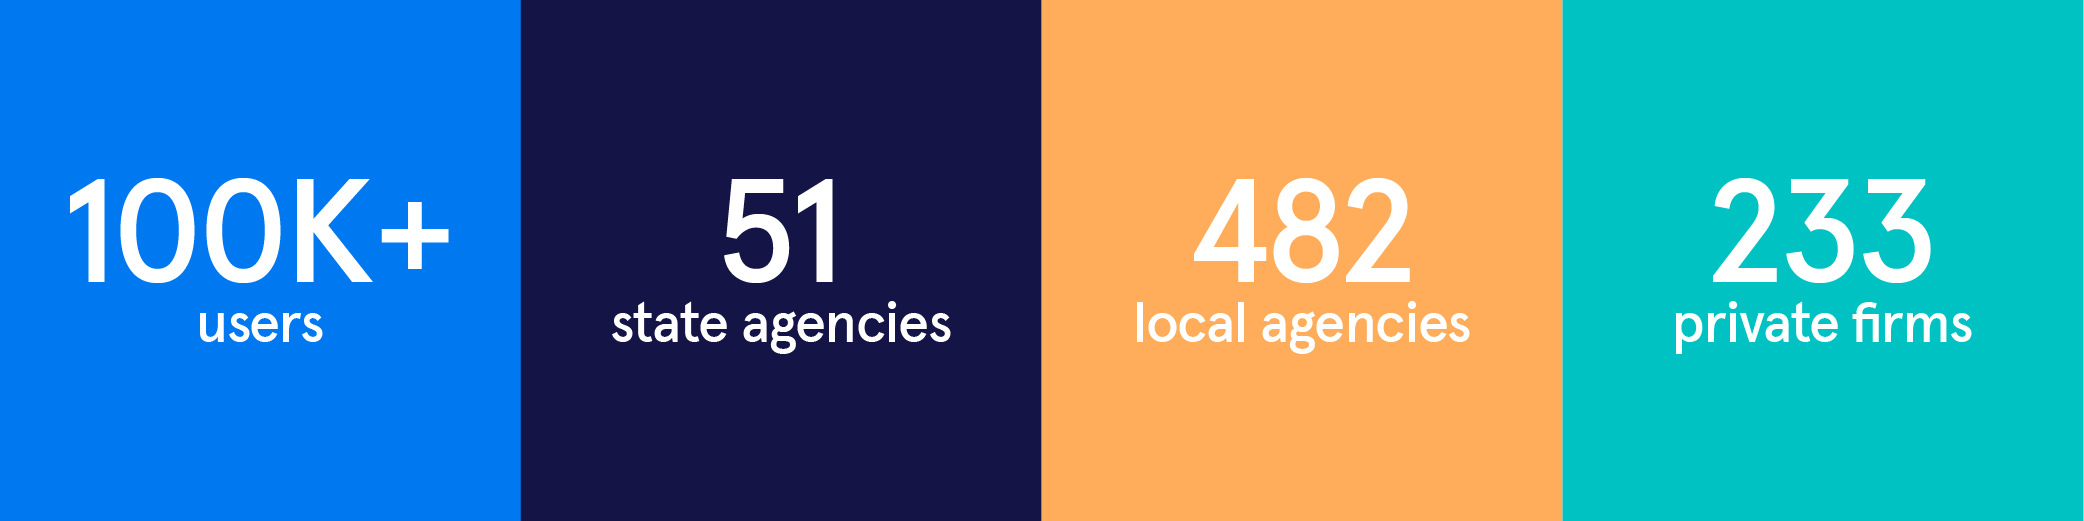 Partnerships Stats: 100,000+ users, 51 state agencies, 482 local agencies, 233 private firms